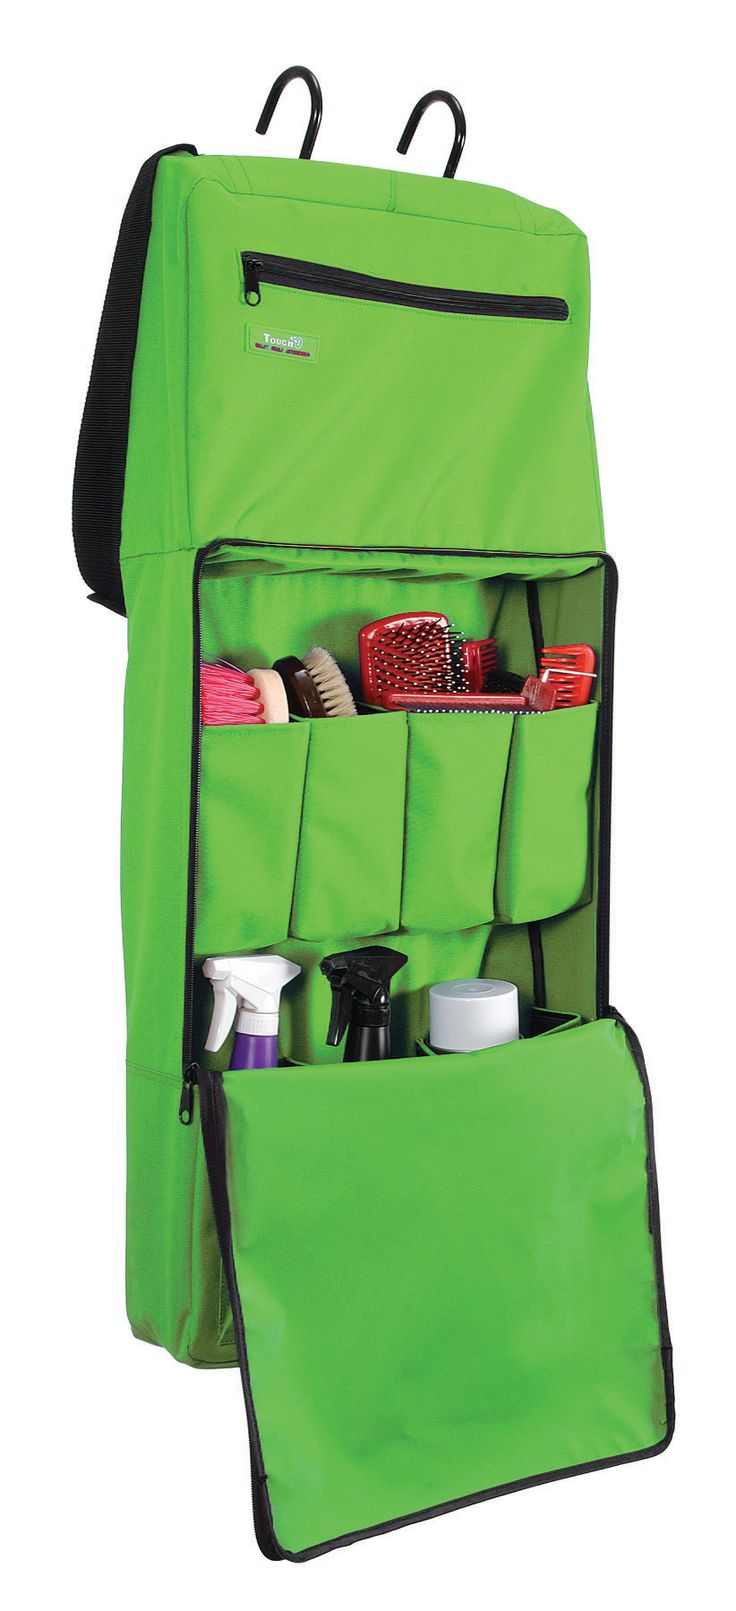 Tough-1 Portable Groomer's Organizer & Carrier | ChickSaddlery.com